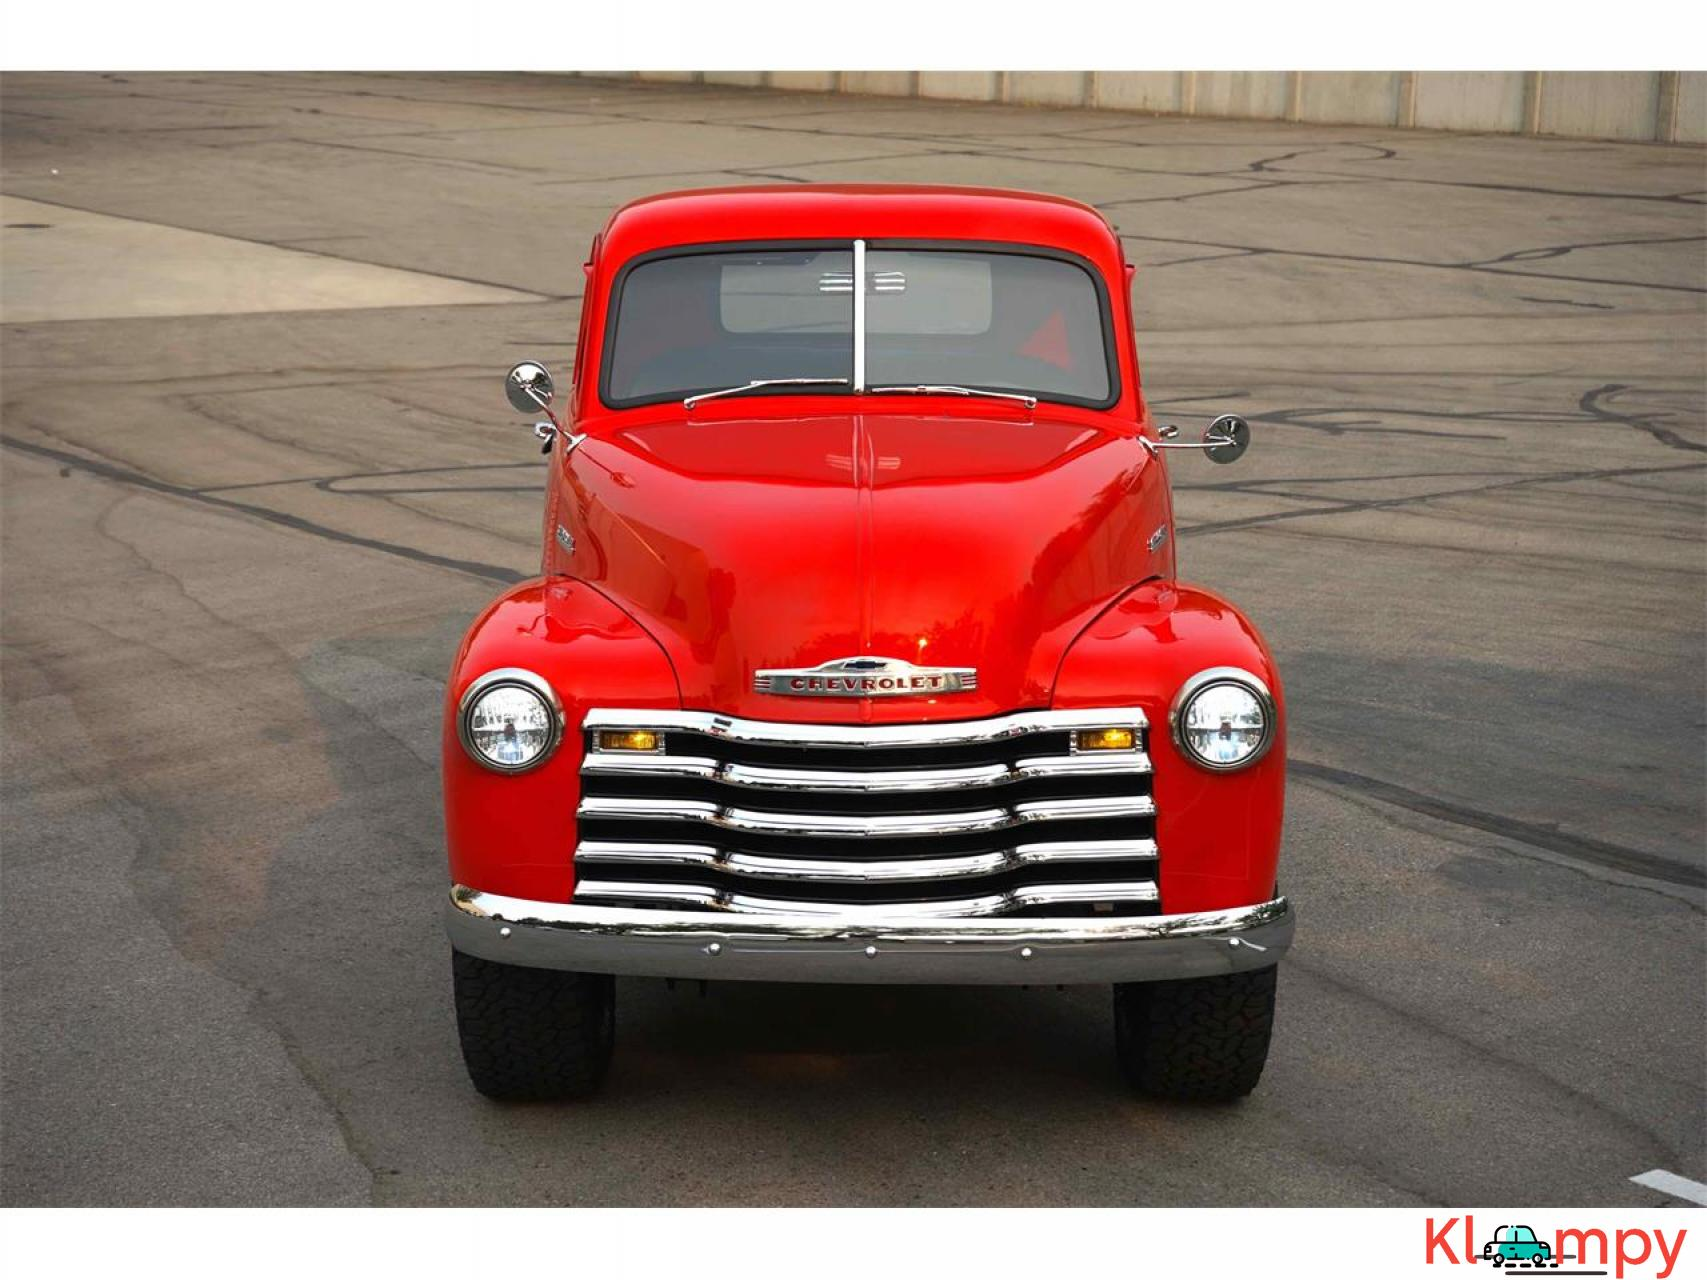 1951 Chevrolet 3100 350 V8 with a B&M Supercharger - 8/17